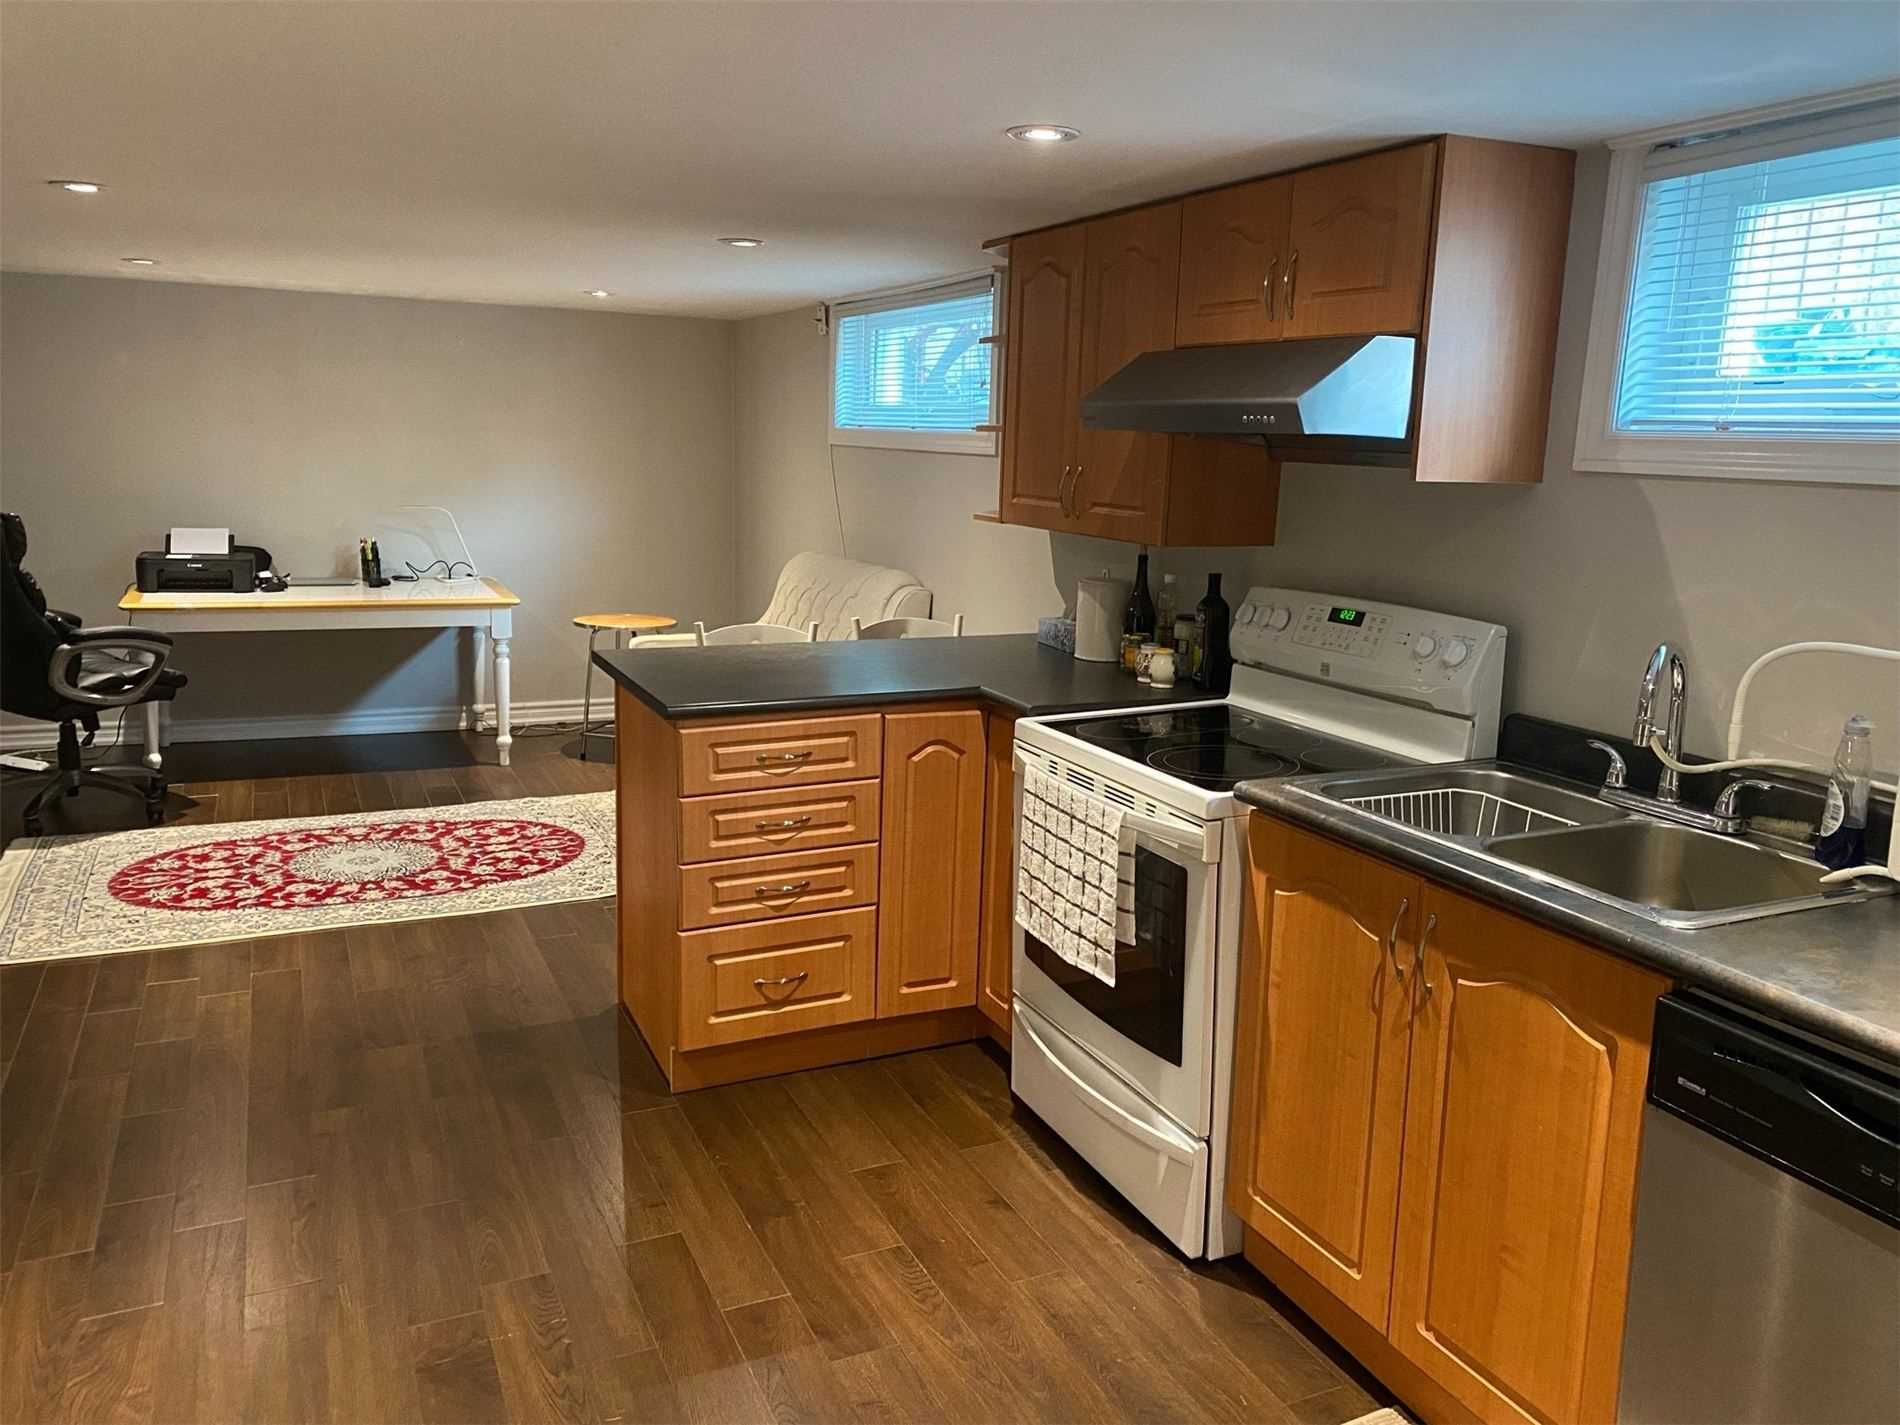 Semi-Detached For Lease In Richmond Hill , 1 Bedroom Bedrooms, ,1 BathroomBathrooms,Semi-Detached,For Lease,Lower,Axminster